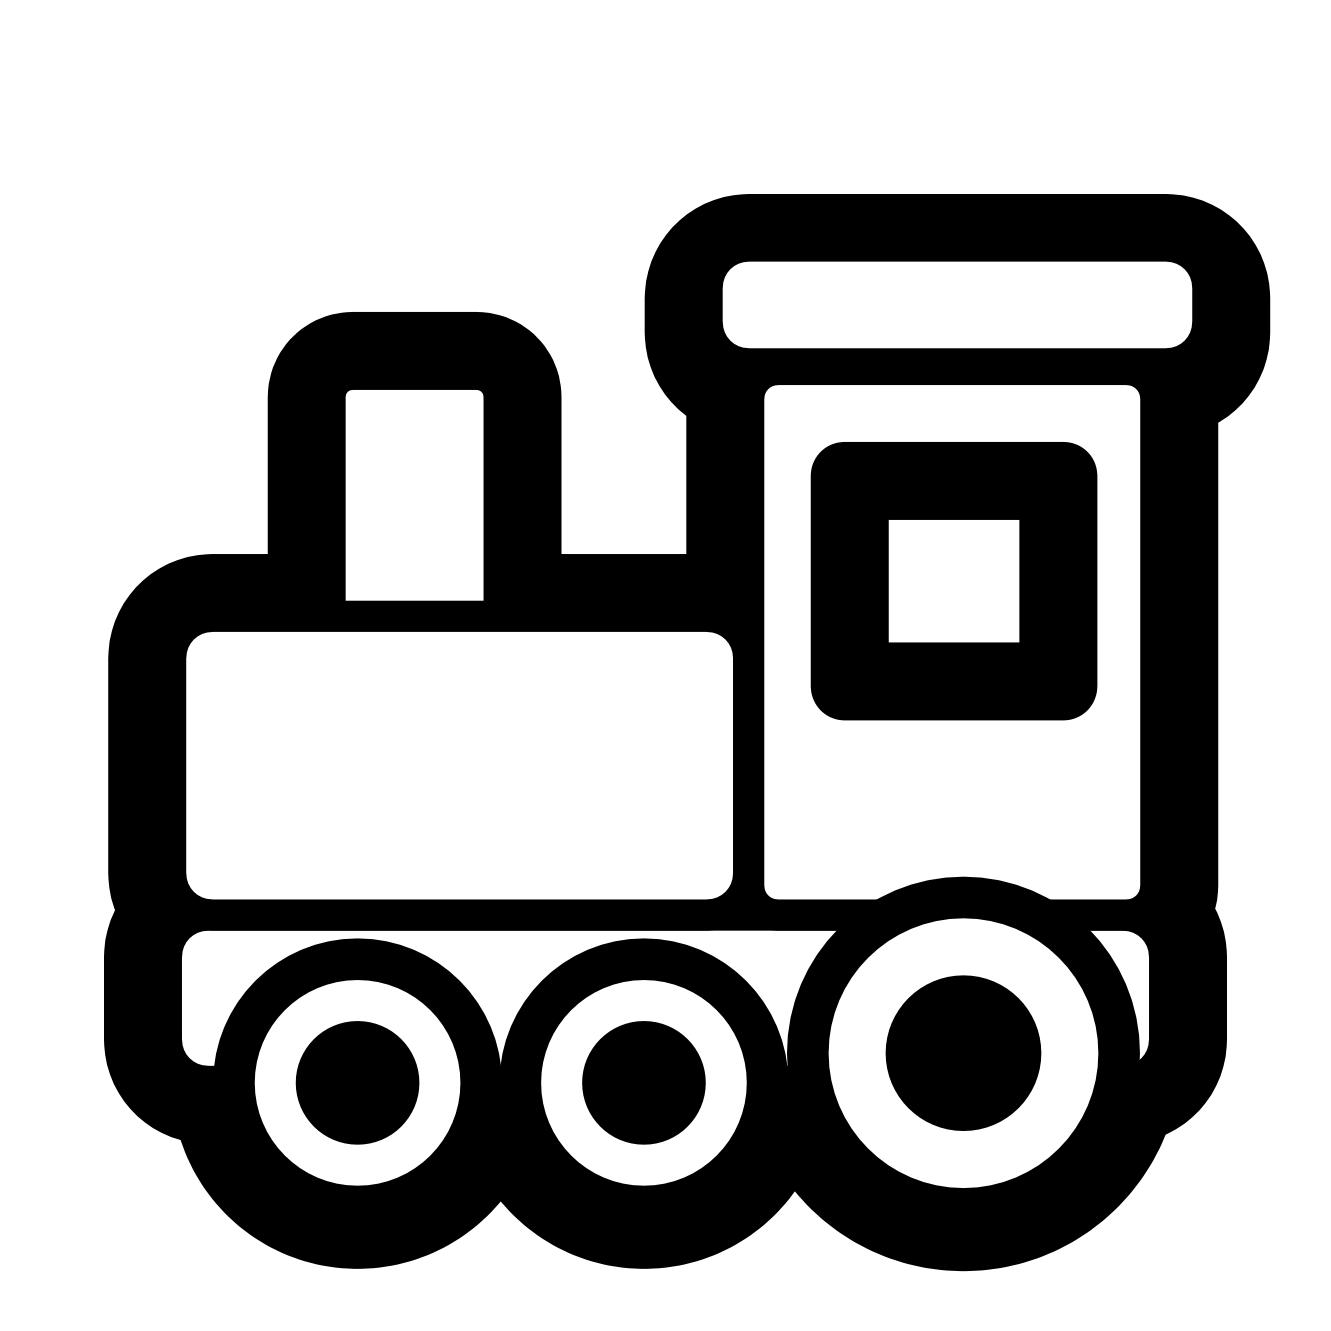 medium resolution of images for train on tracks clipart